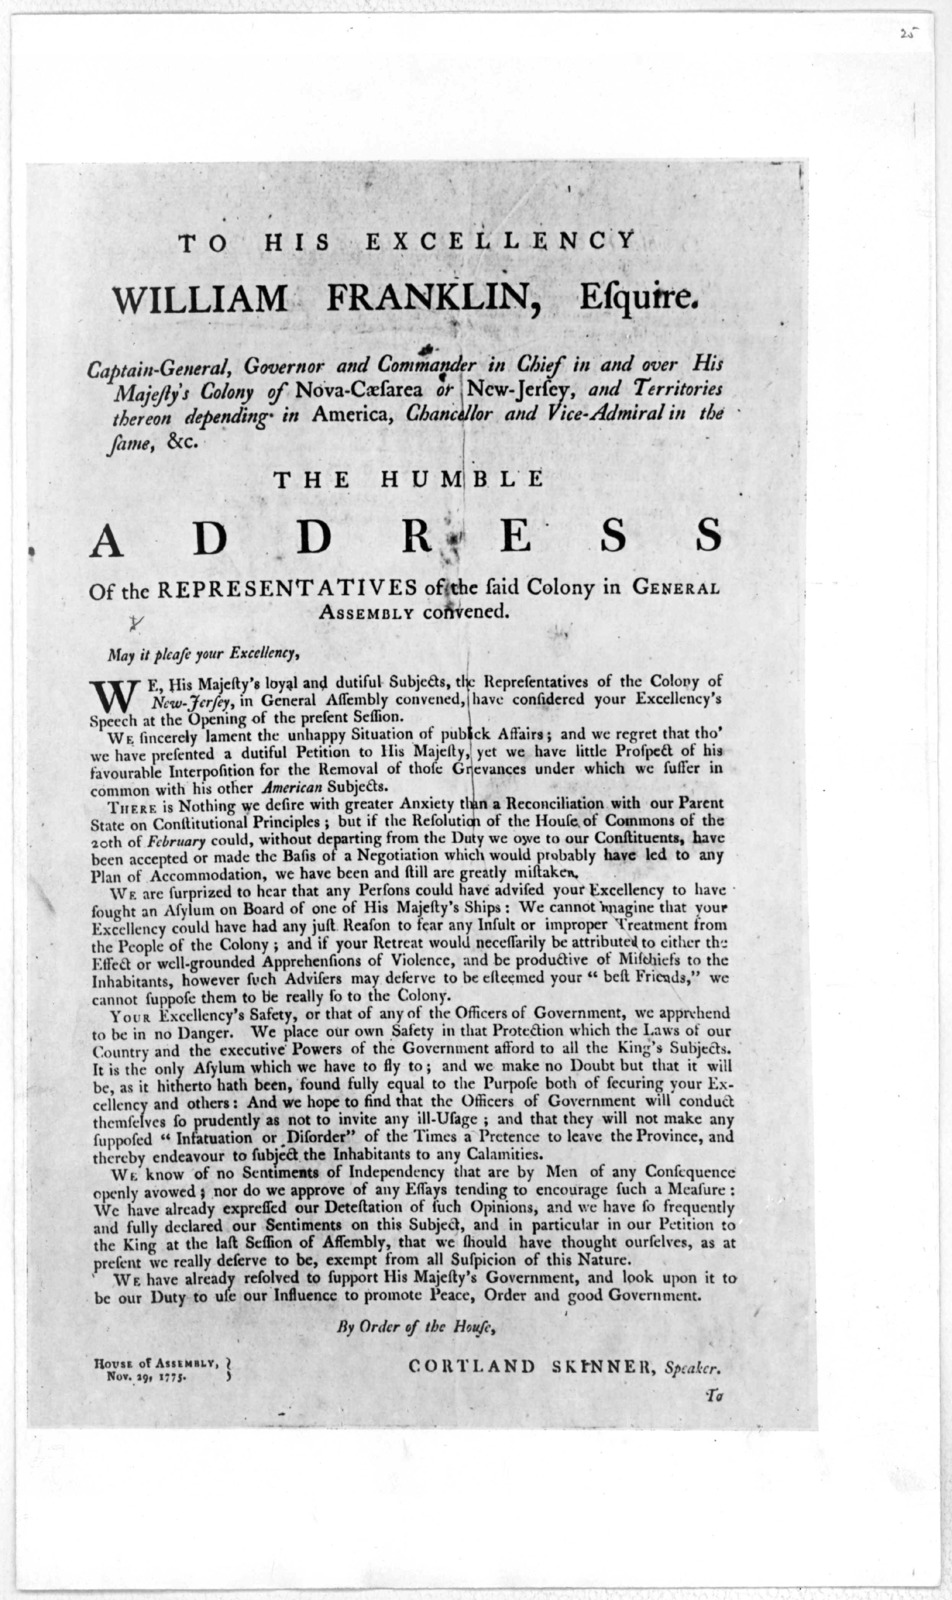 To His Excellency William Franklin, Esquire. Captain-General, Governor and Commander in chief in and over His Majesty's Colony of Nova-Caesarea or New-Jersey, and territories thereon depending in America, Chancellorand Vice-admiral in the same,